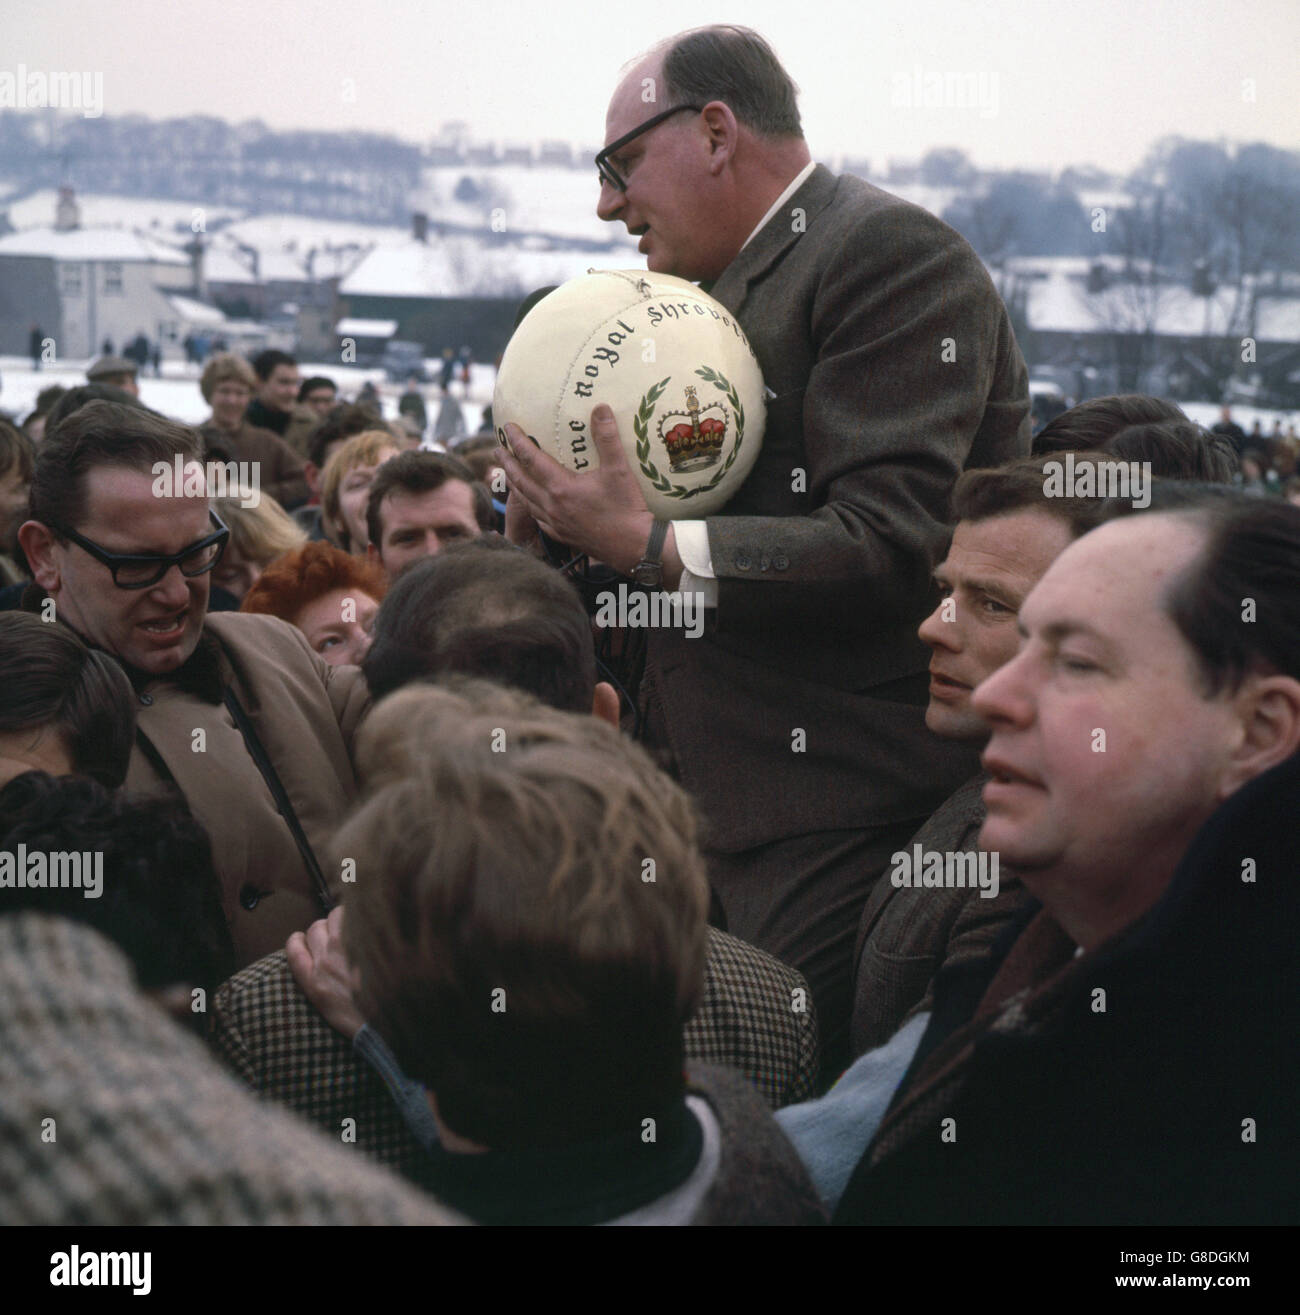 Customs and Traditions - Shrovetide Football Match - Ashbourne, Derbyshire - Stock Image